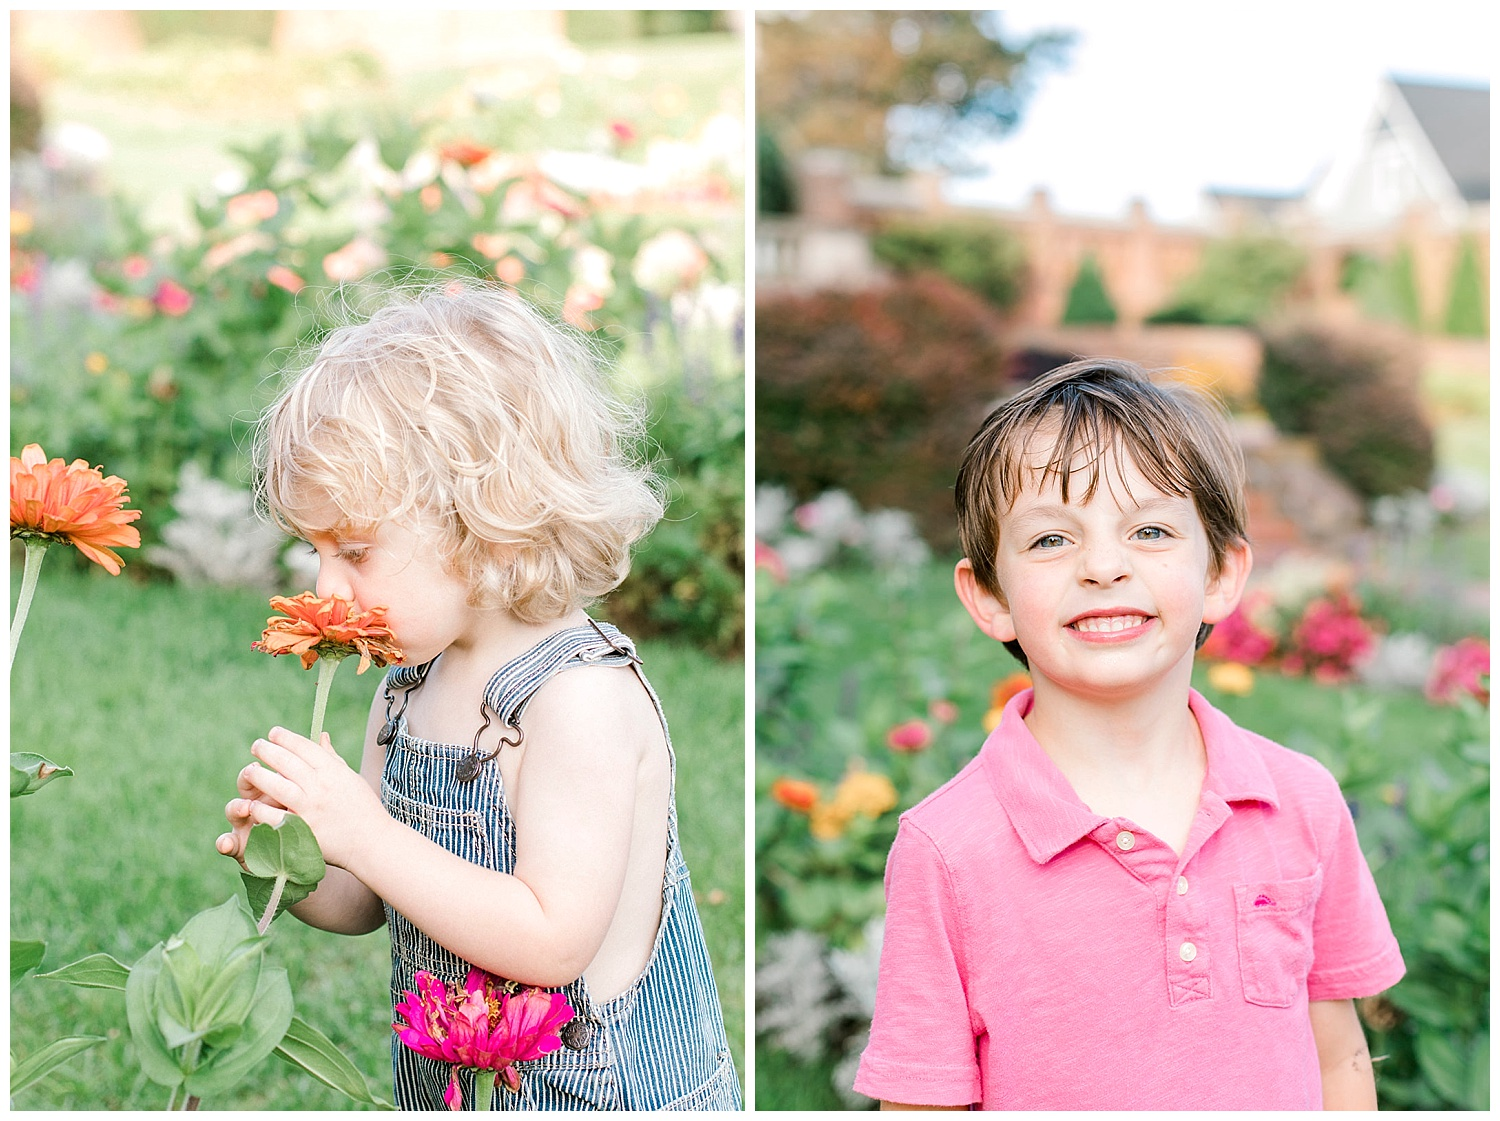 lynch park beverly family photo session. kids and flowers